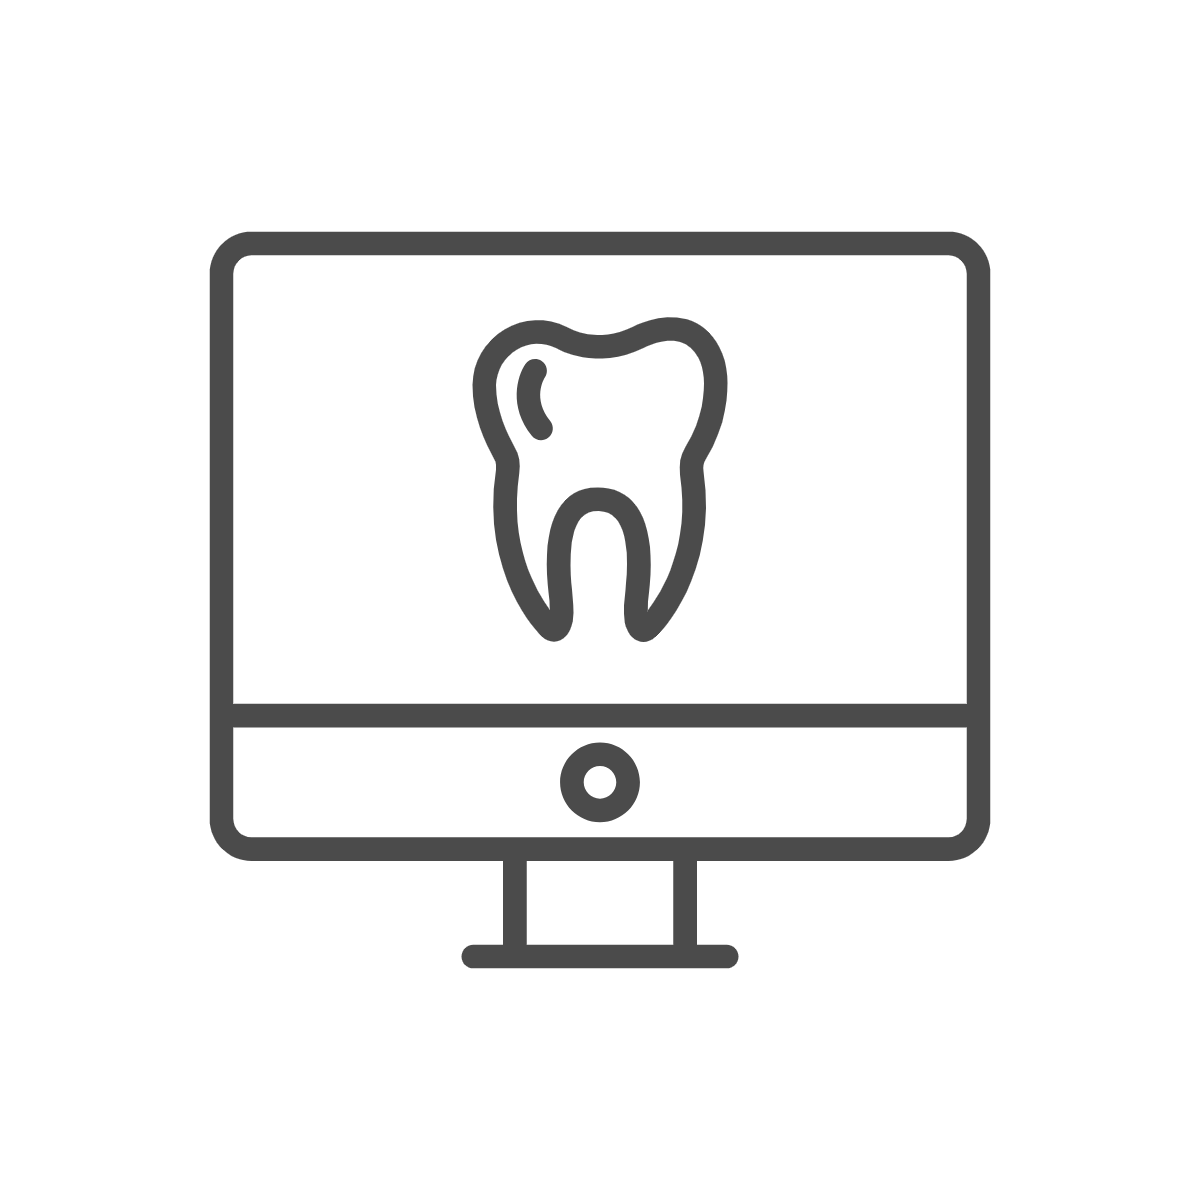 Tooth on computer screen icon